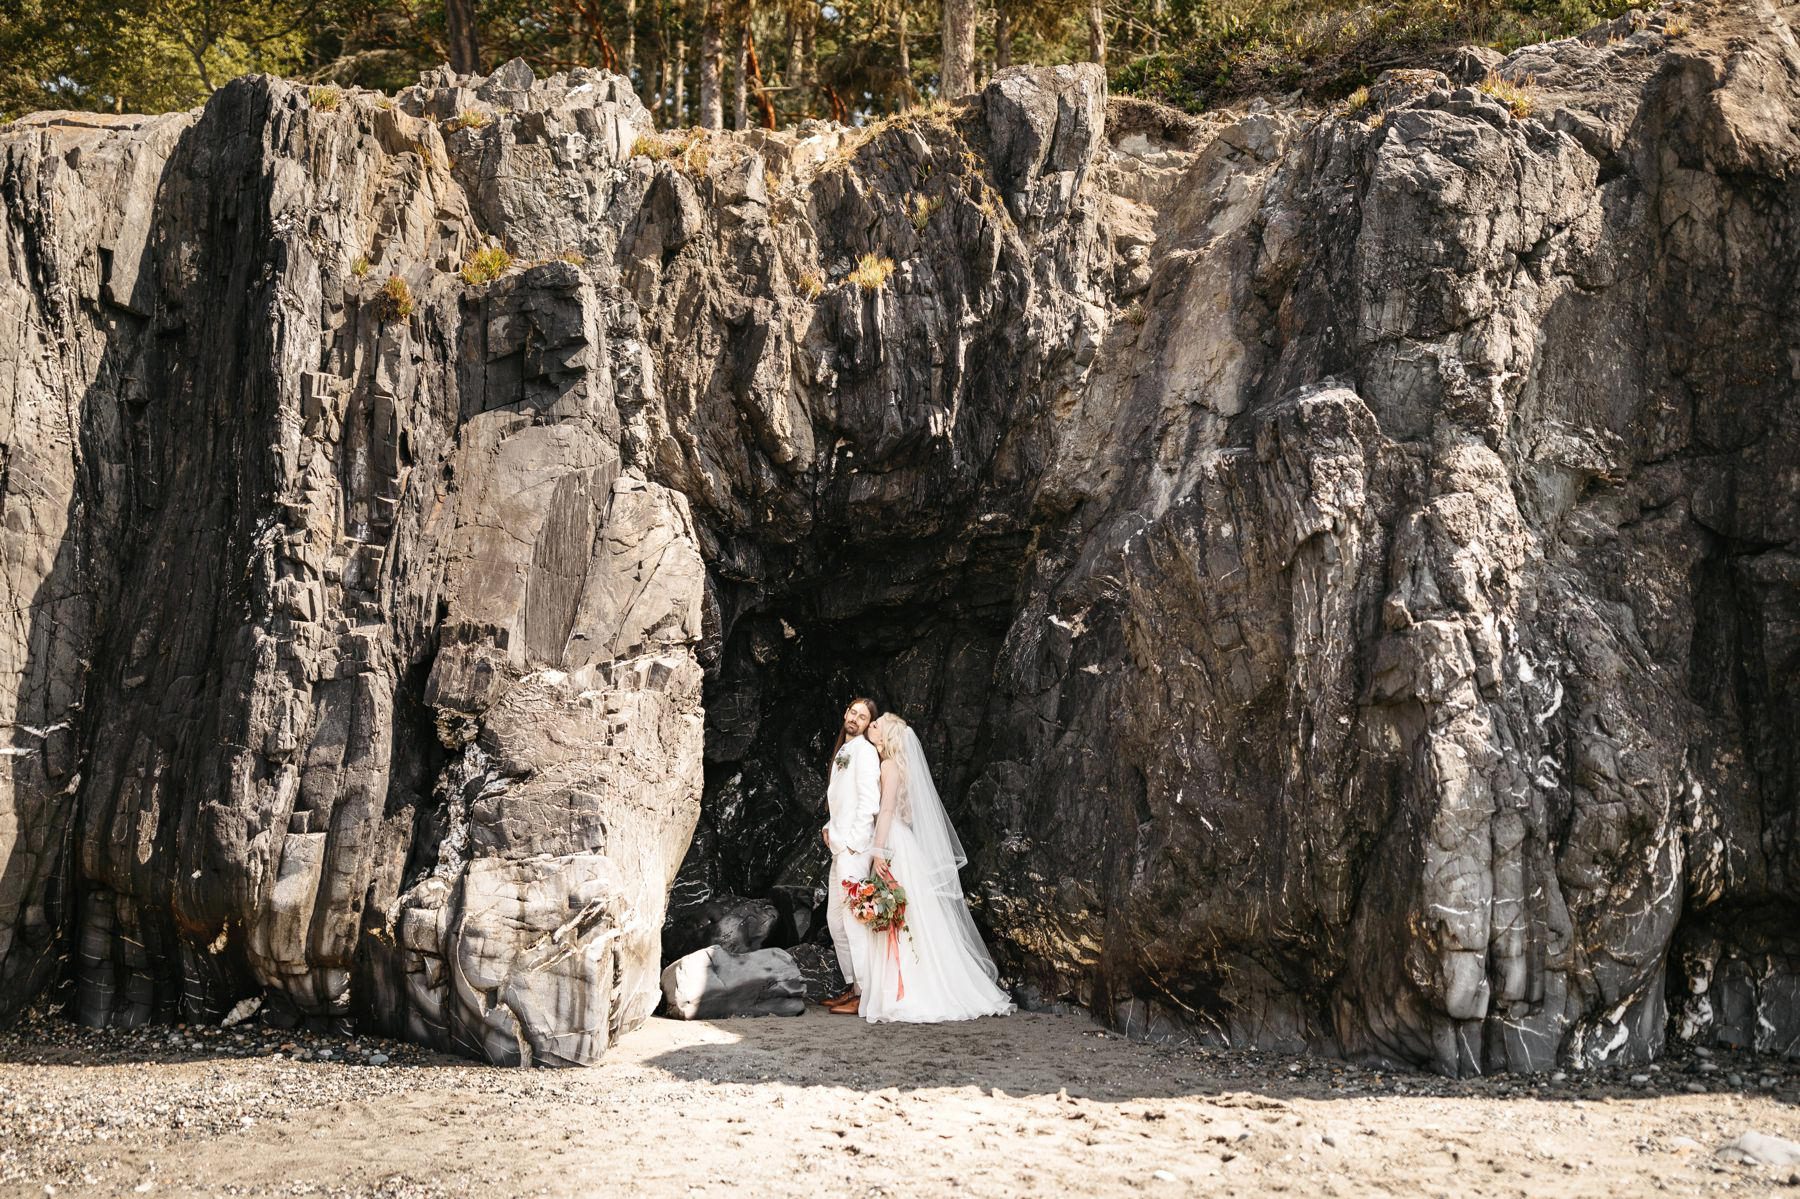 deception pass wedding cave